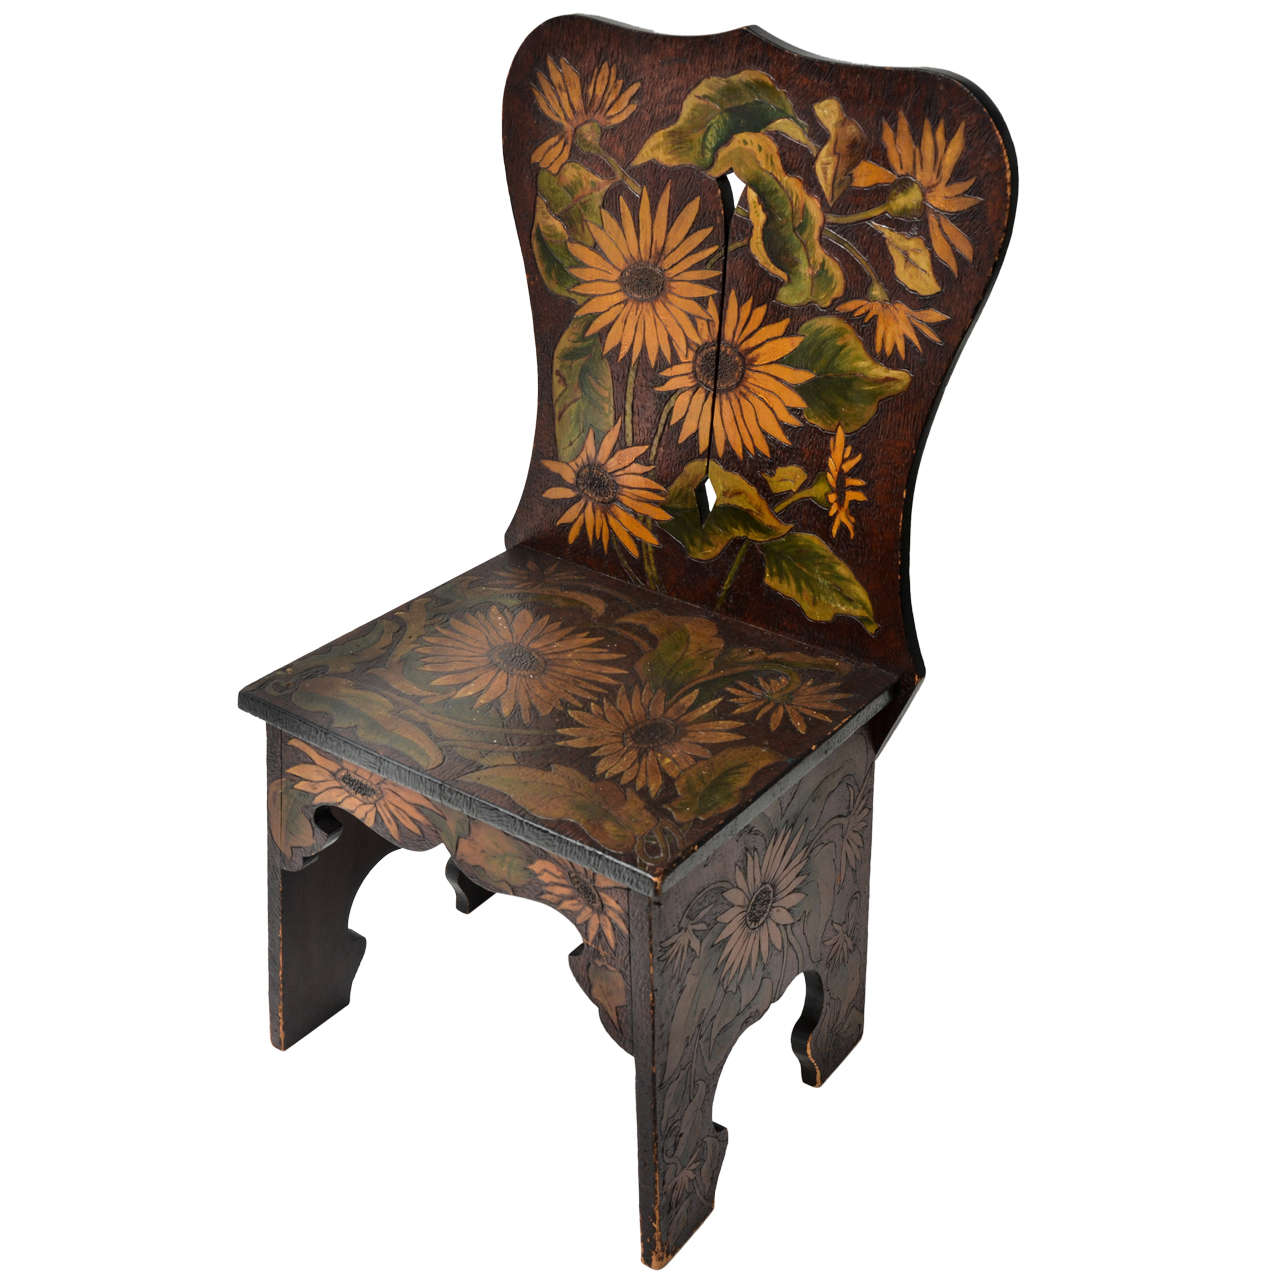 Sunflower Chair sculptural wood side chair with pyrography and painted sunflower